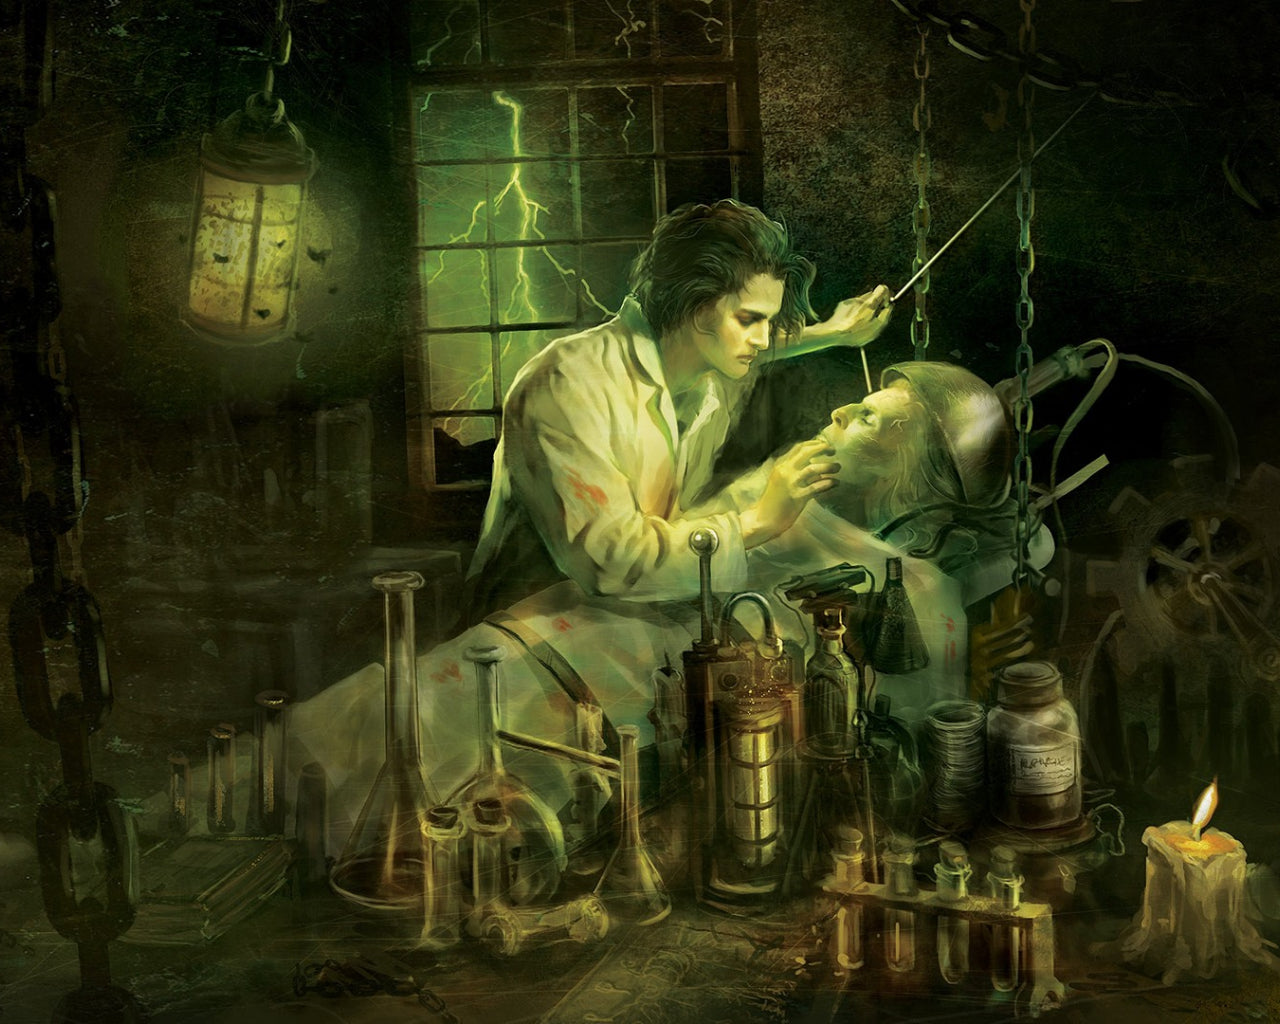 Dr. Victor Frankenstein creating his monster in his laboratory